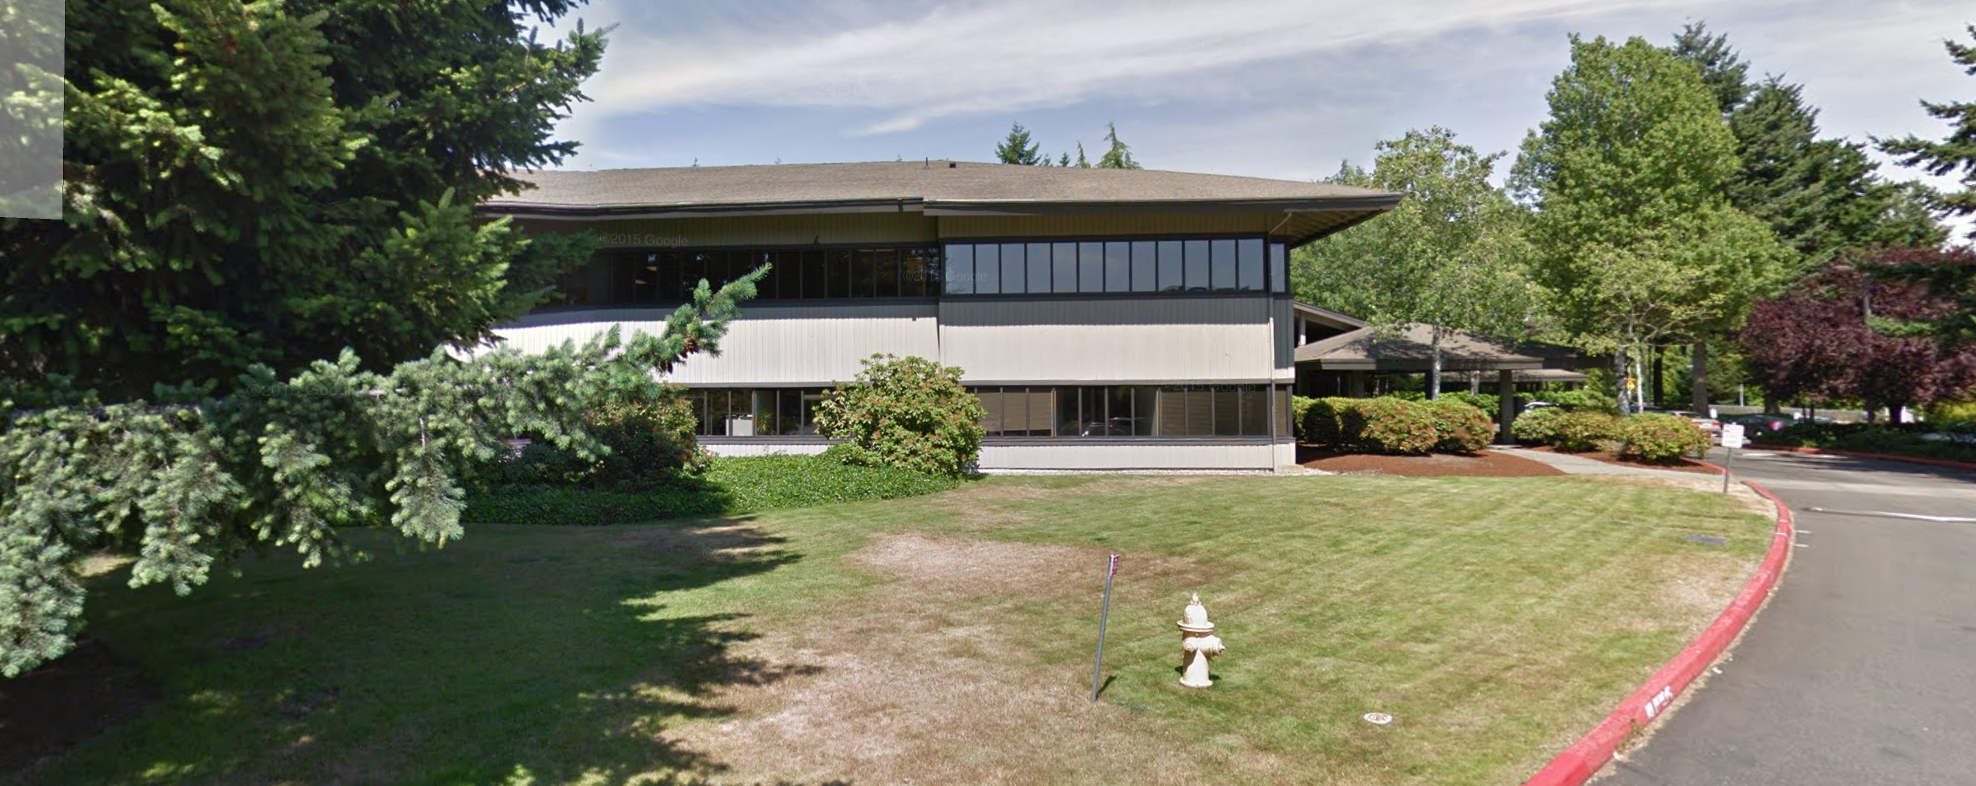 Puget Sound – Bellevue 14673 NE 29th Place, Suite #2105, Bellevue, WA 98007  206-441-4465 Ext. 1